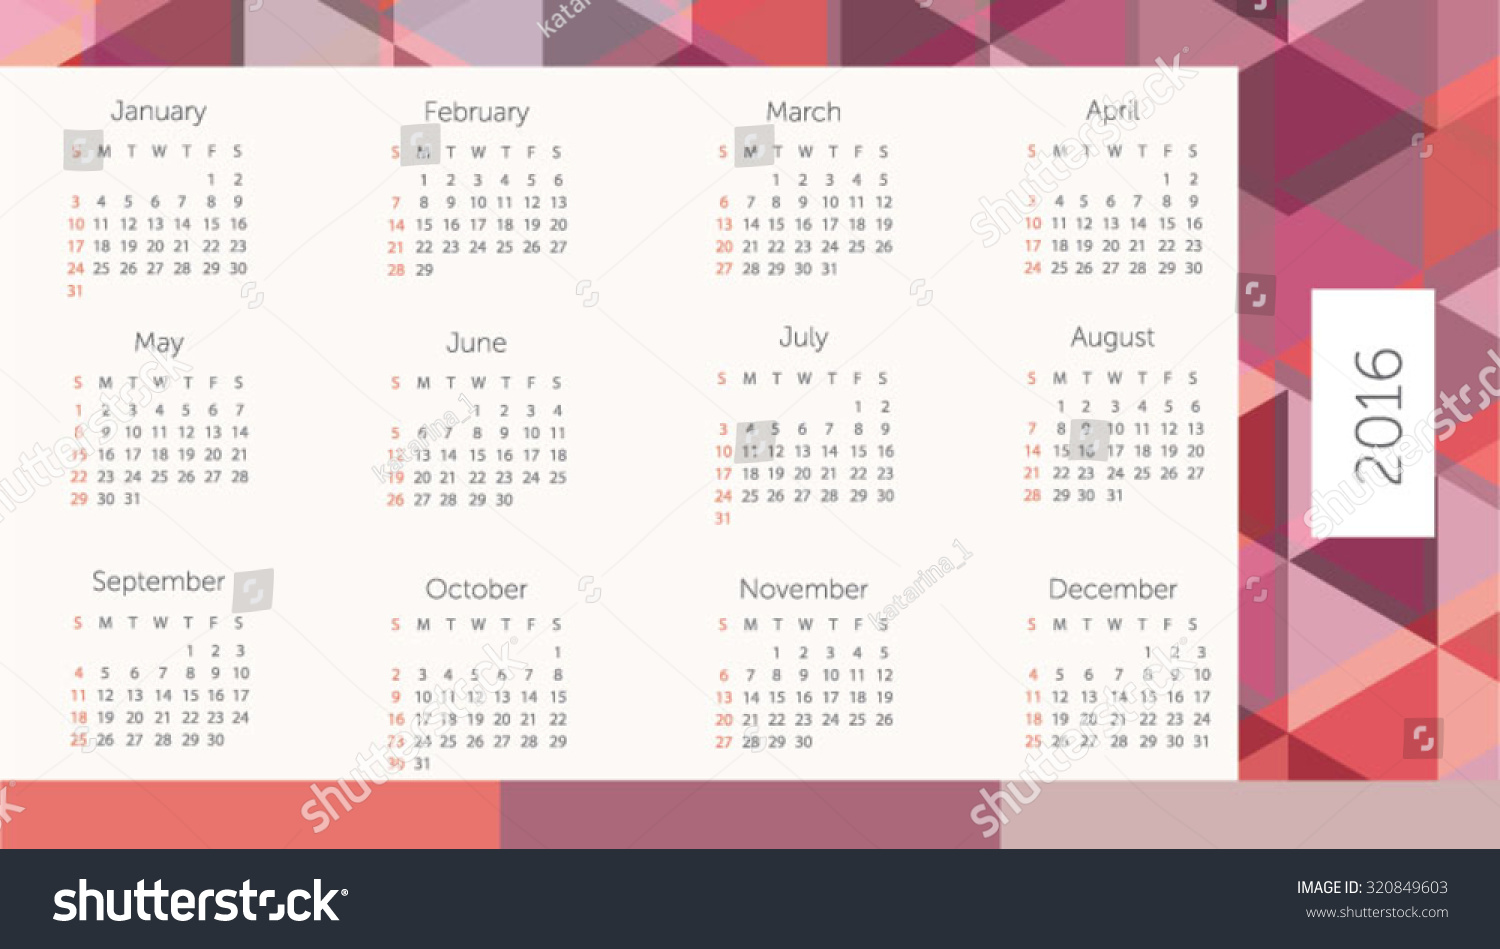 Calendar Illustration Vector : Calendar vector illustration stock